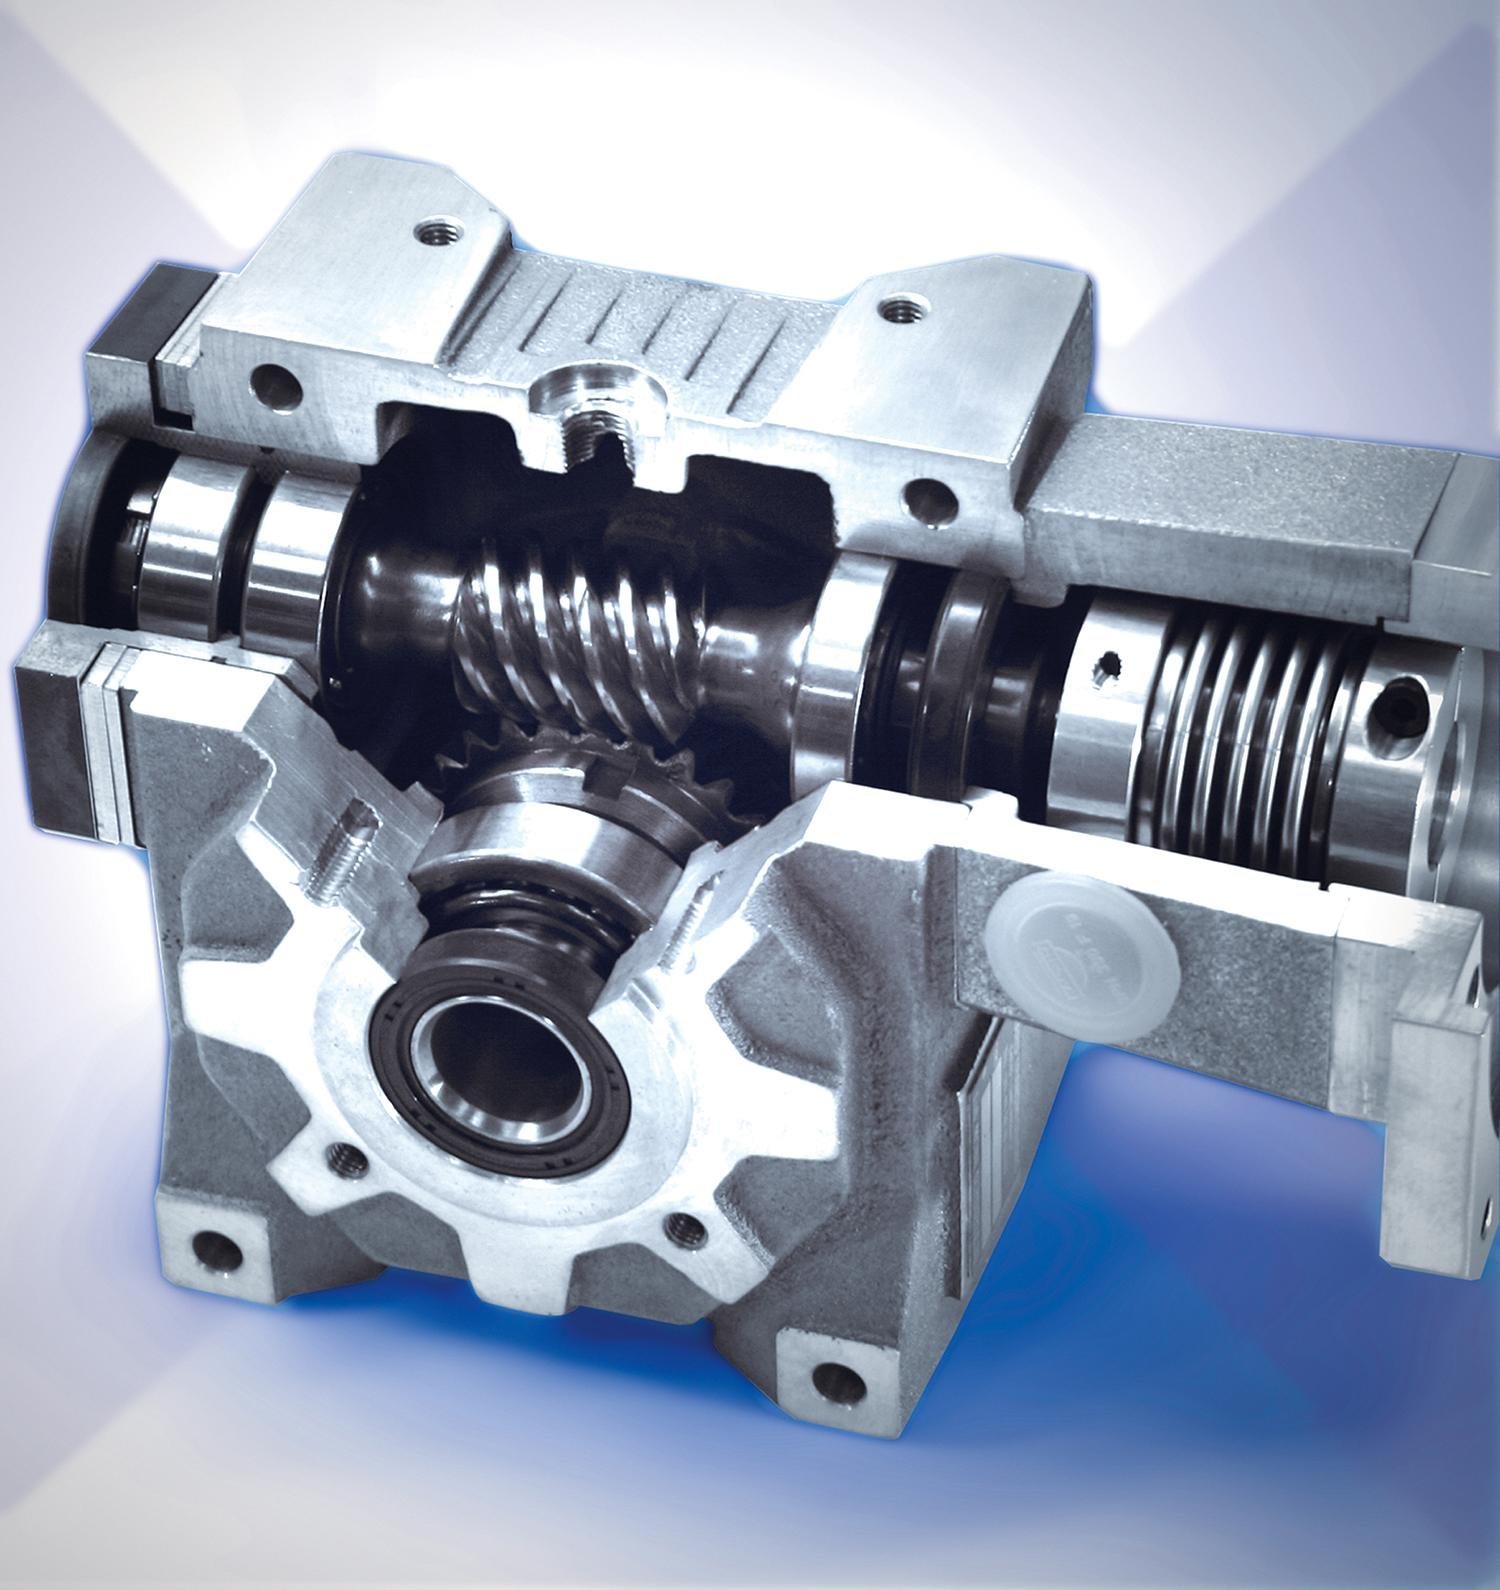 Space saving servo gearheads with reduced backlash to less than 1 arcminute